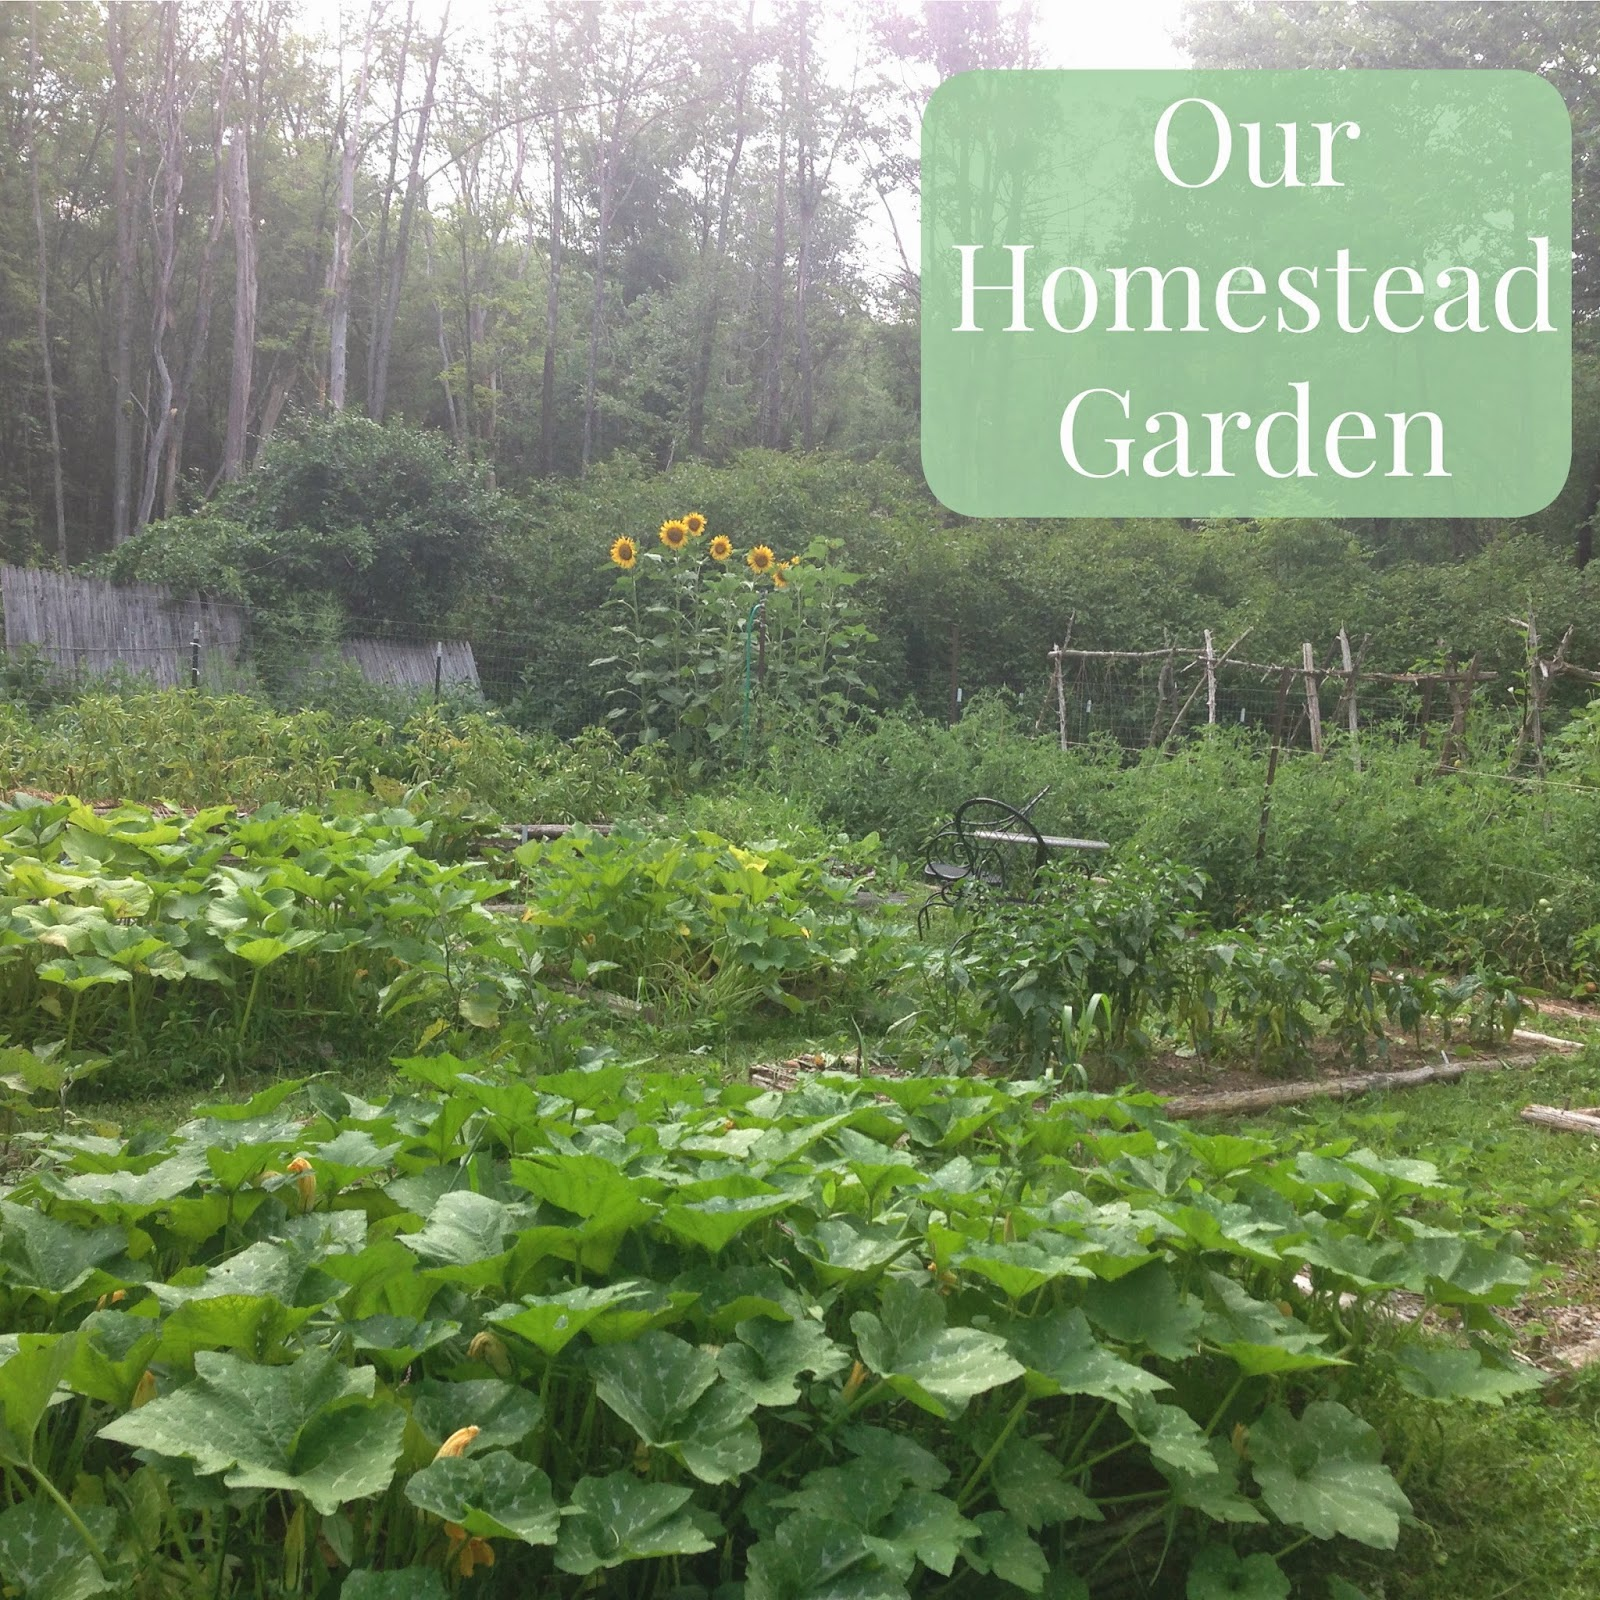 Homestead Gardens Landscaping: Linn Acres Farm: Tour Of Our Homestead Garden